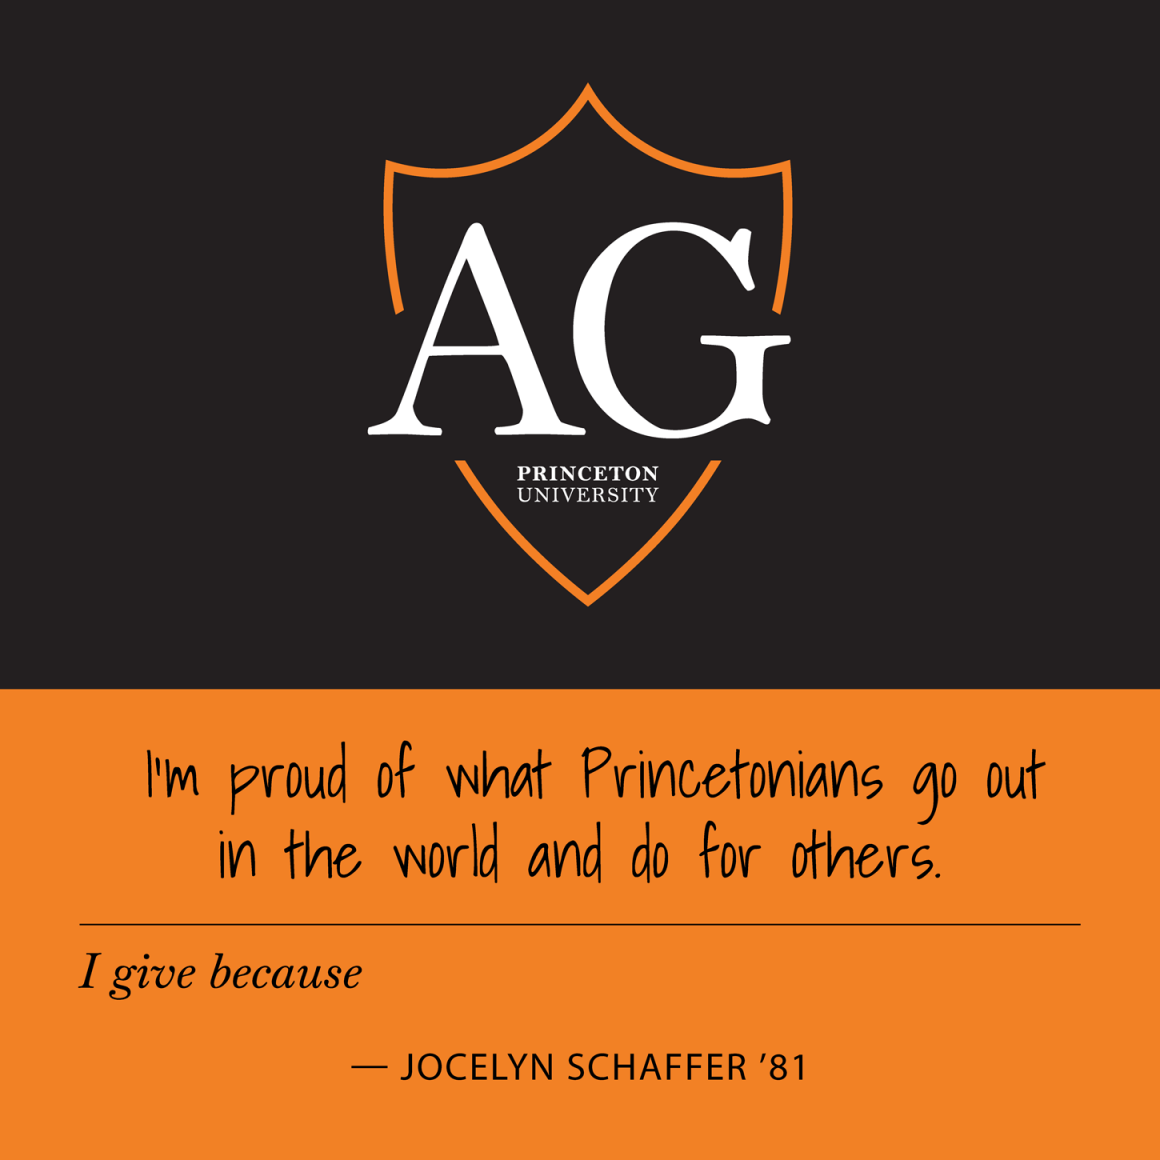 """I give because I am proud of what Princetonians go out in the world and do for others."" Jocelyn Schaffer '81"